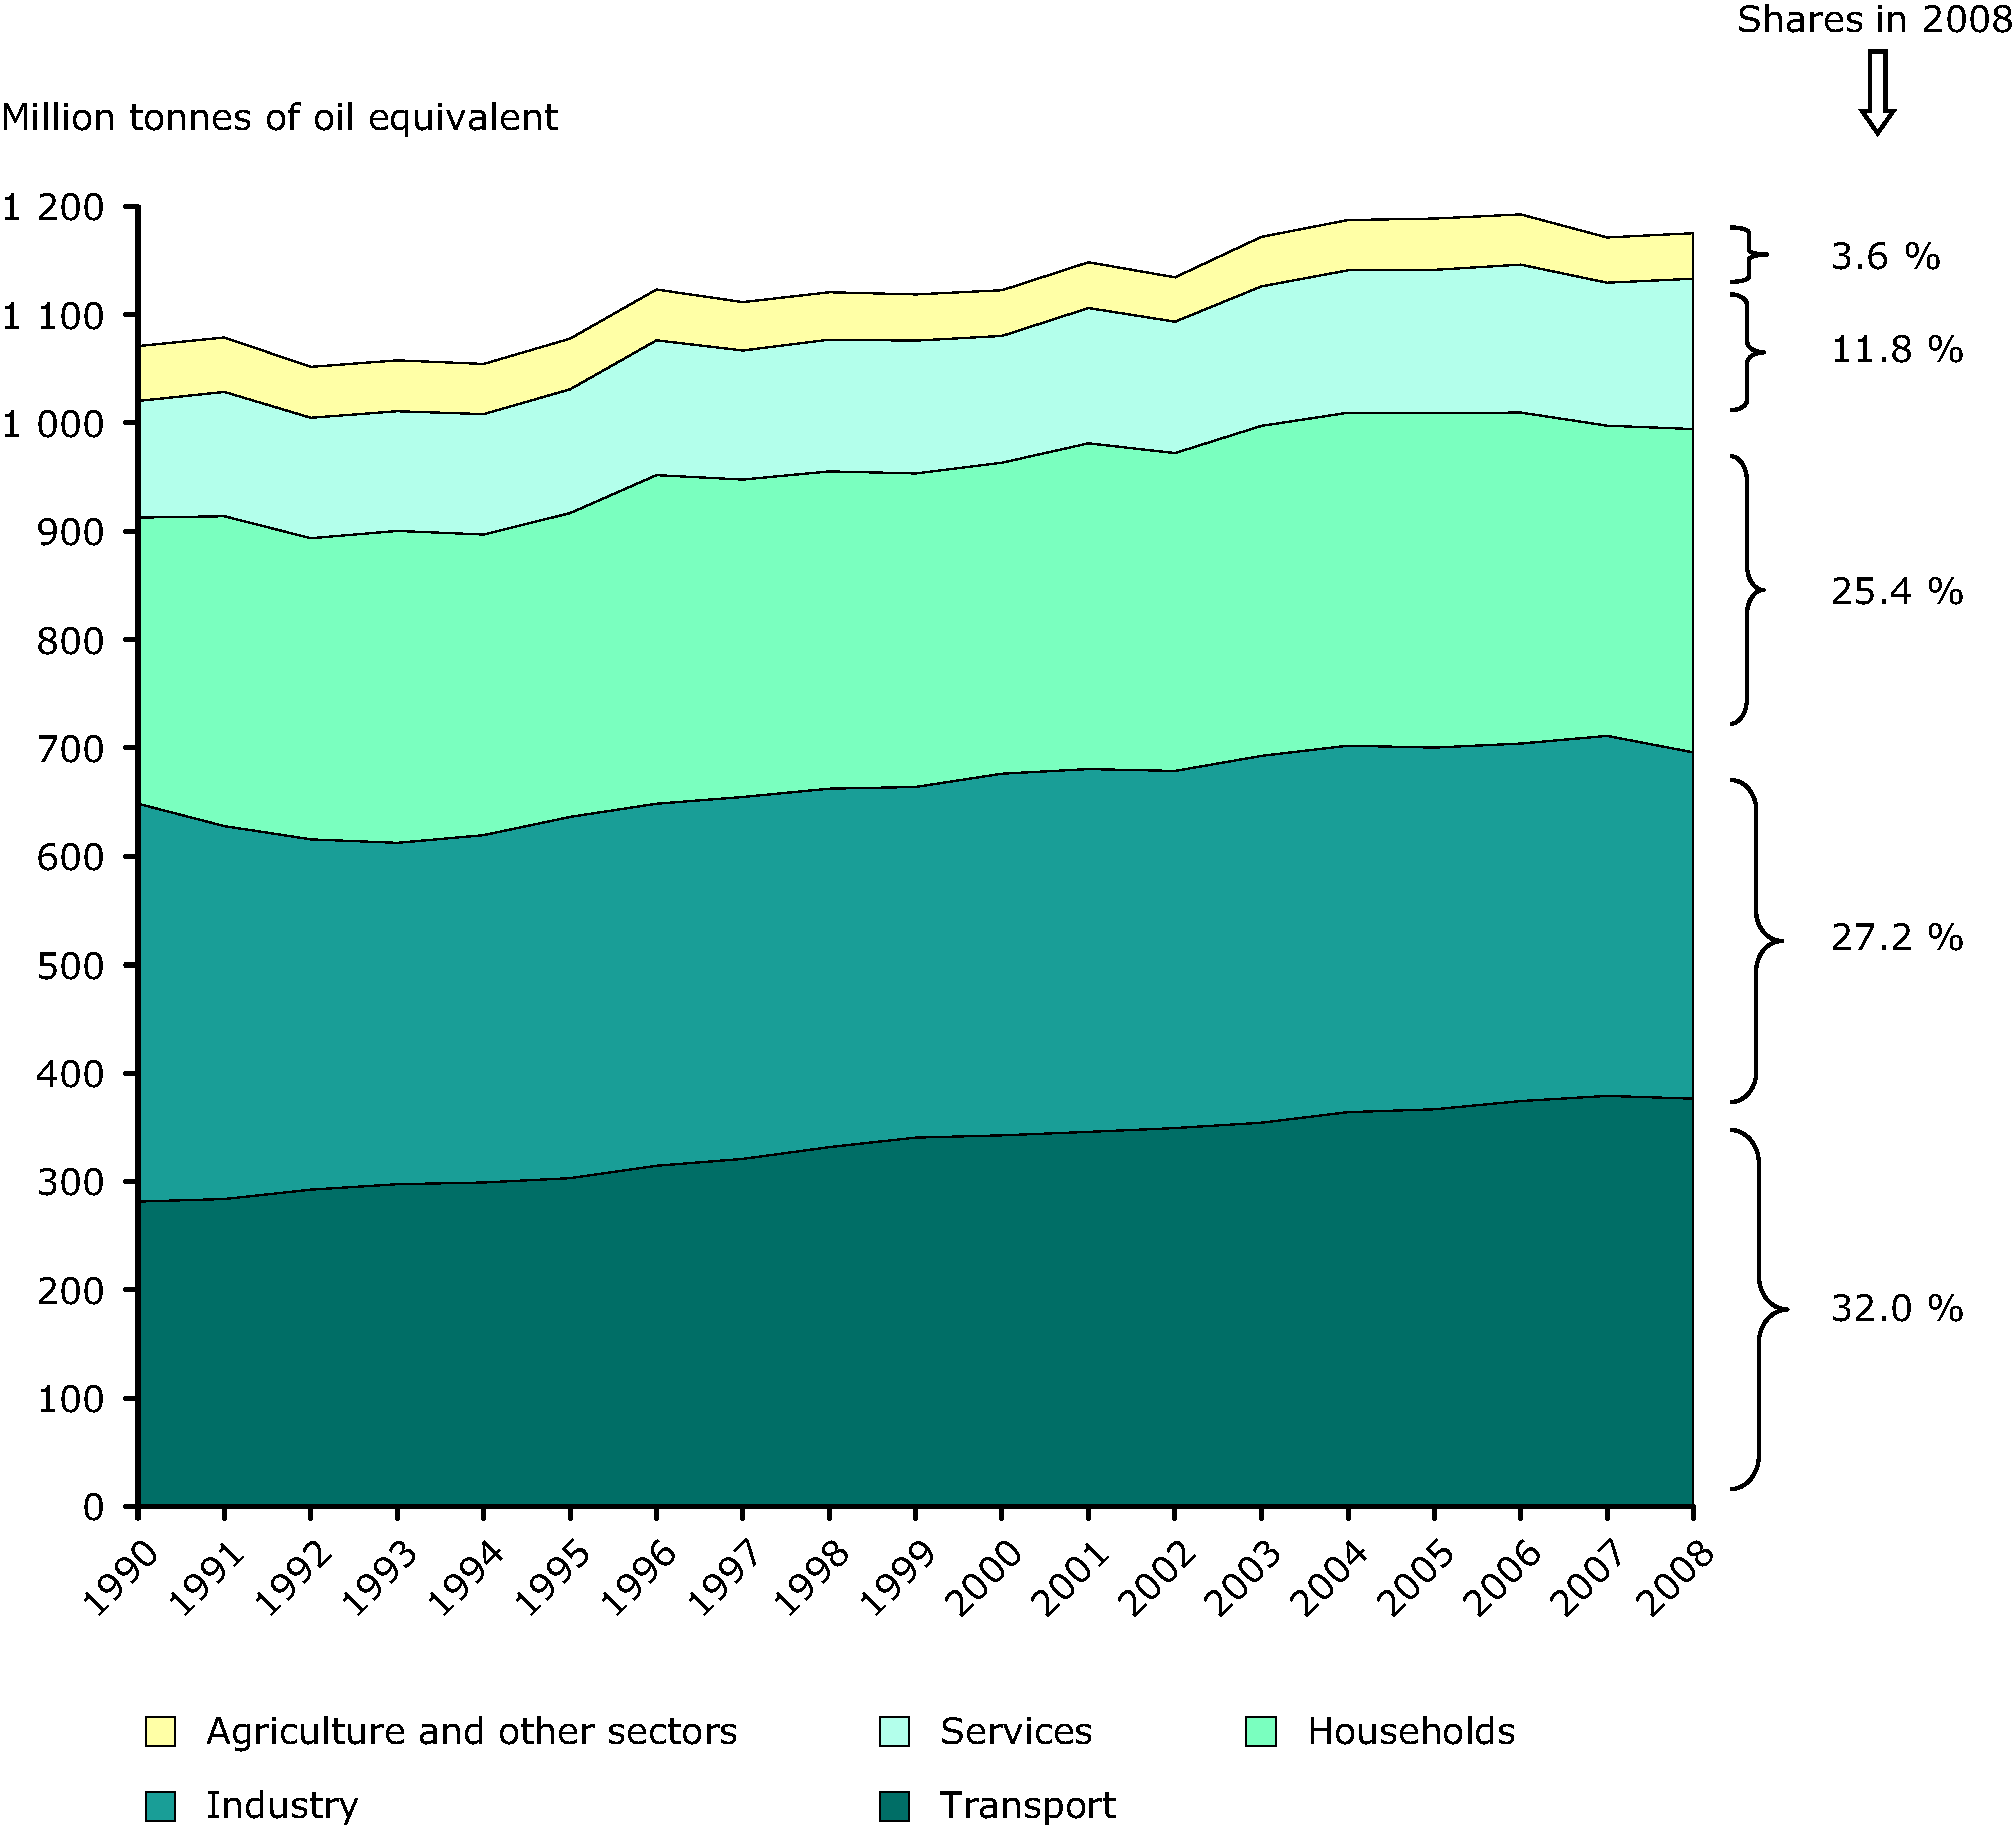 Final energy consumption by sector in the EU-27, 1990-2008